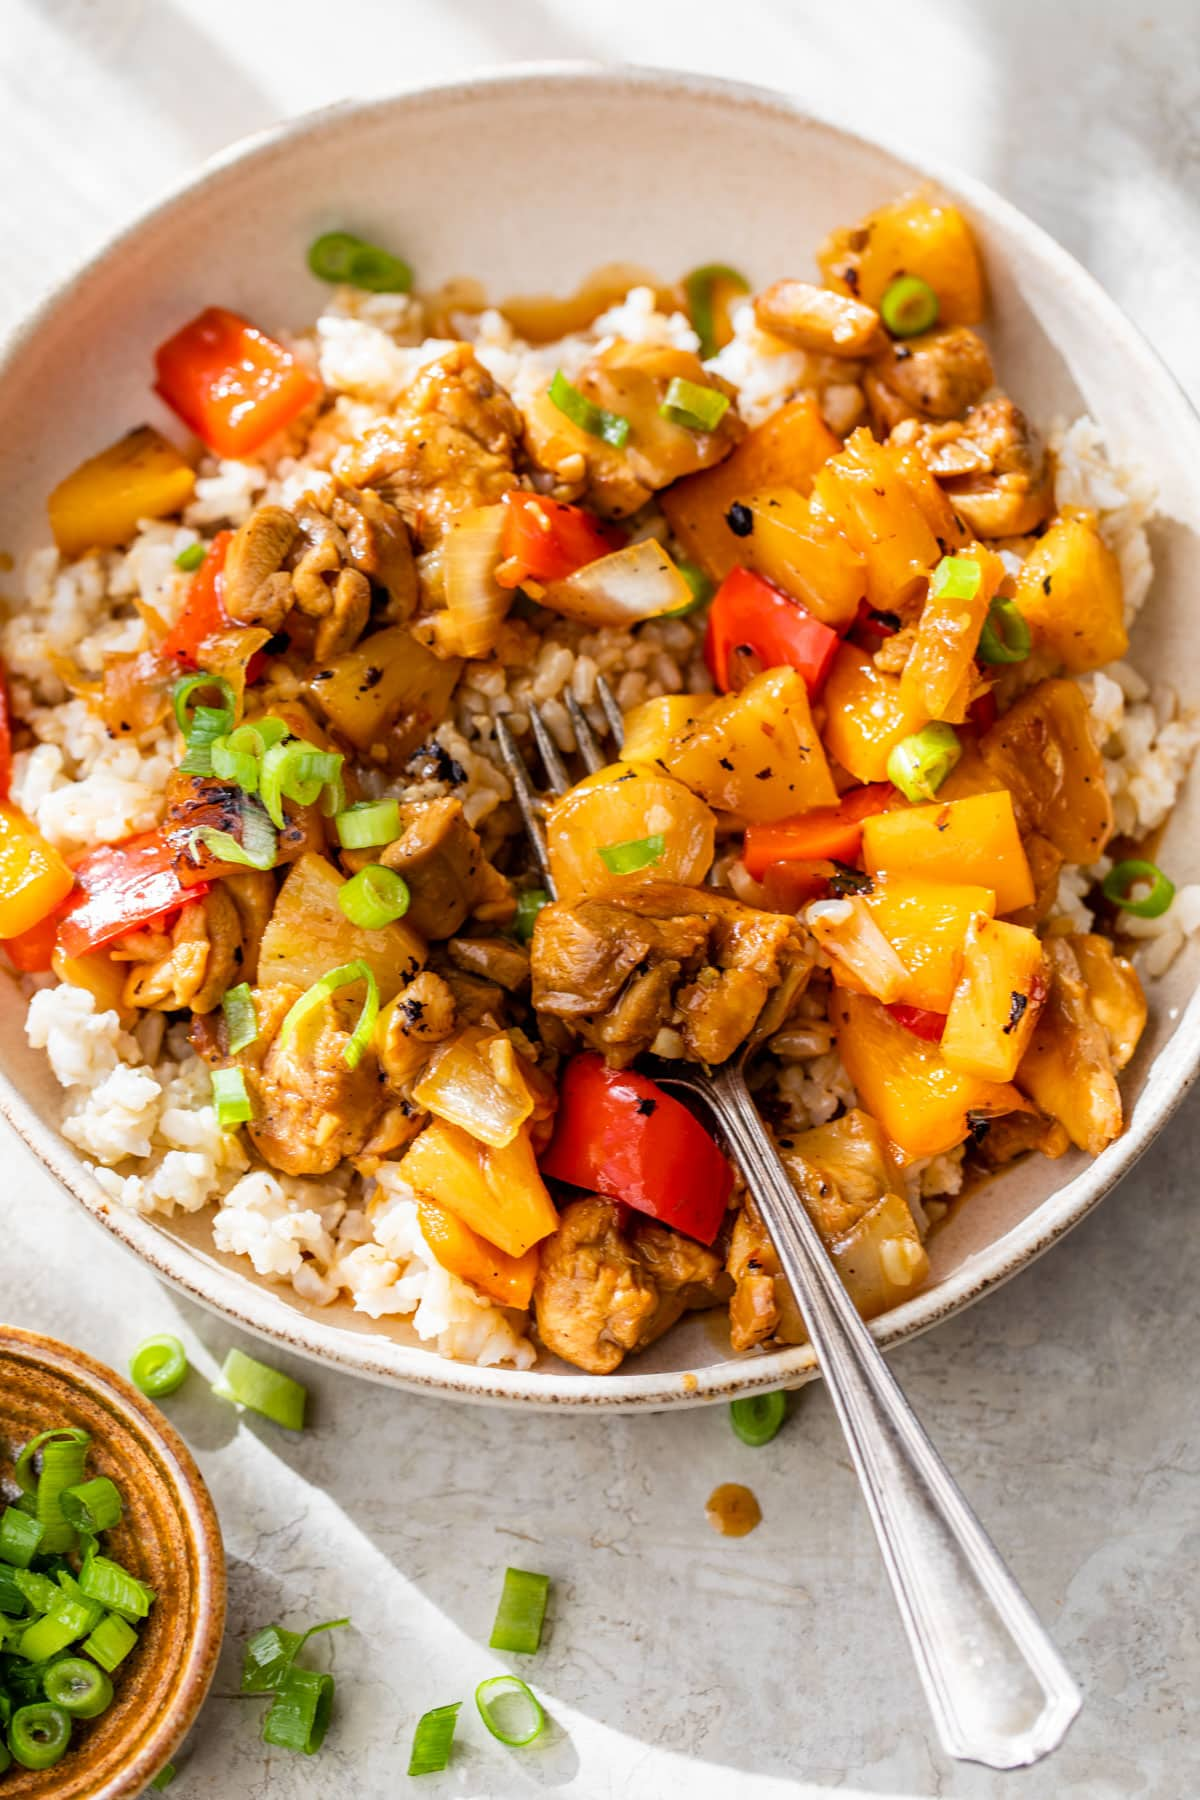 Hot and Sour Noodle Stir Fry with Peanut Chicken. An easy healthy stir fry loaded with flavor and ready FAST